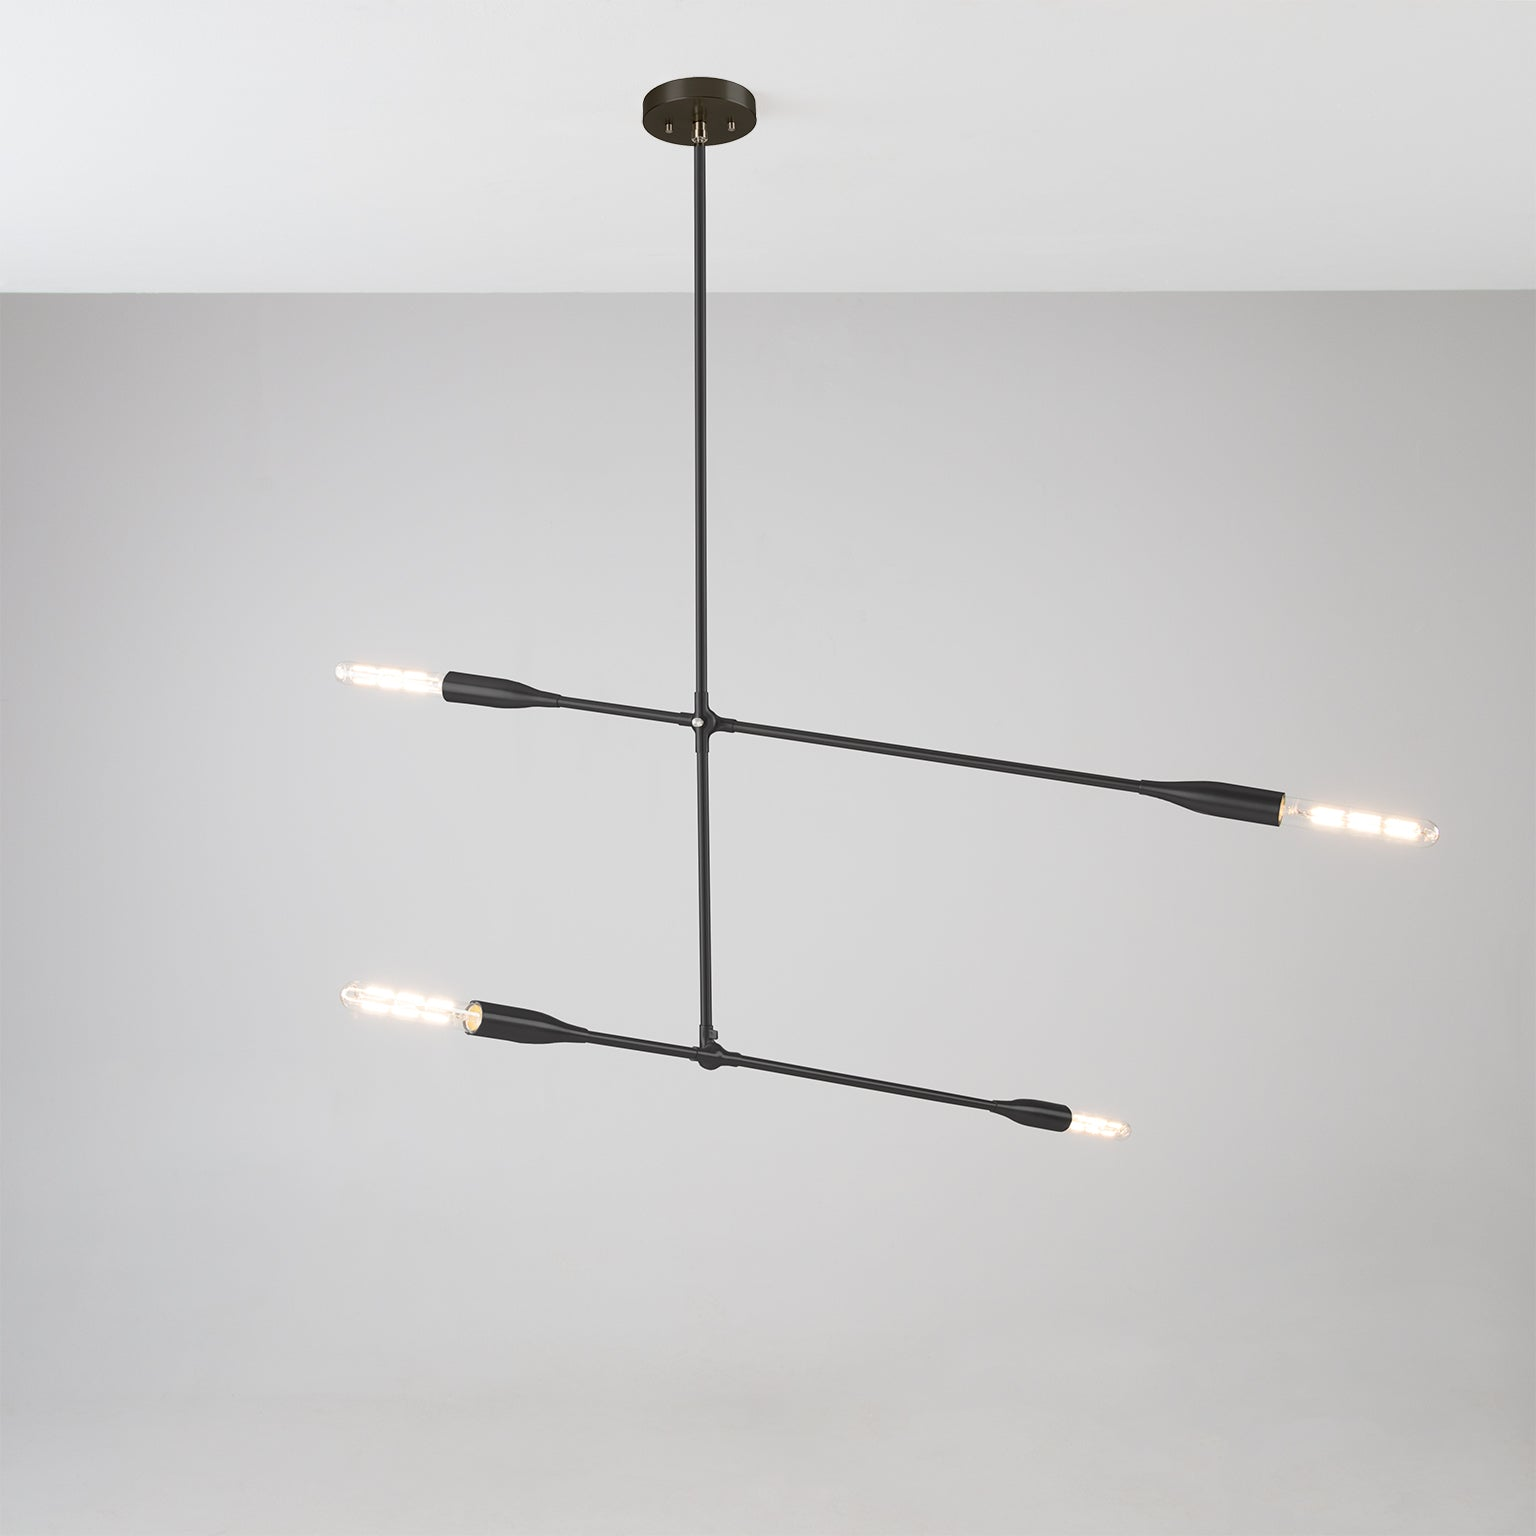 Sorenthia 2-Arm Light in Black Poppy powder coat with Nickel Details by Studio DUNN